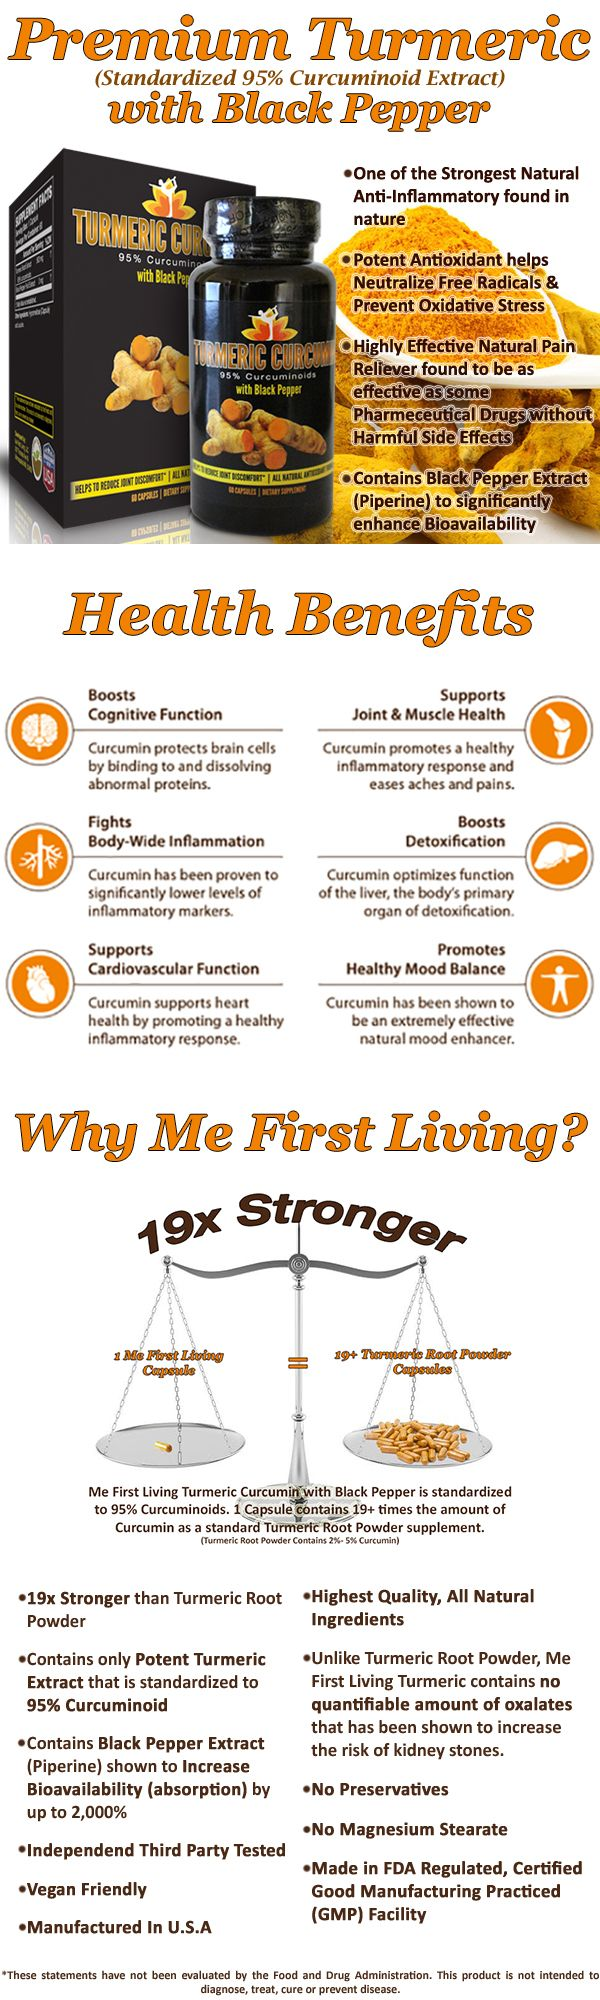 Not all Turmeric Supplements are the same! 19X STRONGER! Me First Living Premium Turmeric Curcumin with Black Pepper contains 95% Curcuminoids (Extract), the same potency used in scientific studies! It is many times stronger than regular turmeric root powder supplements and is up to 2,000% more absorbent!